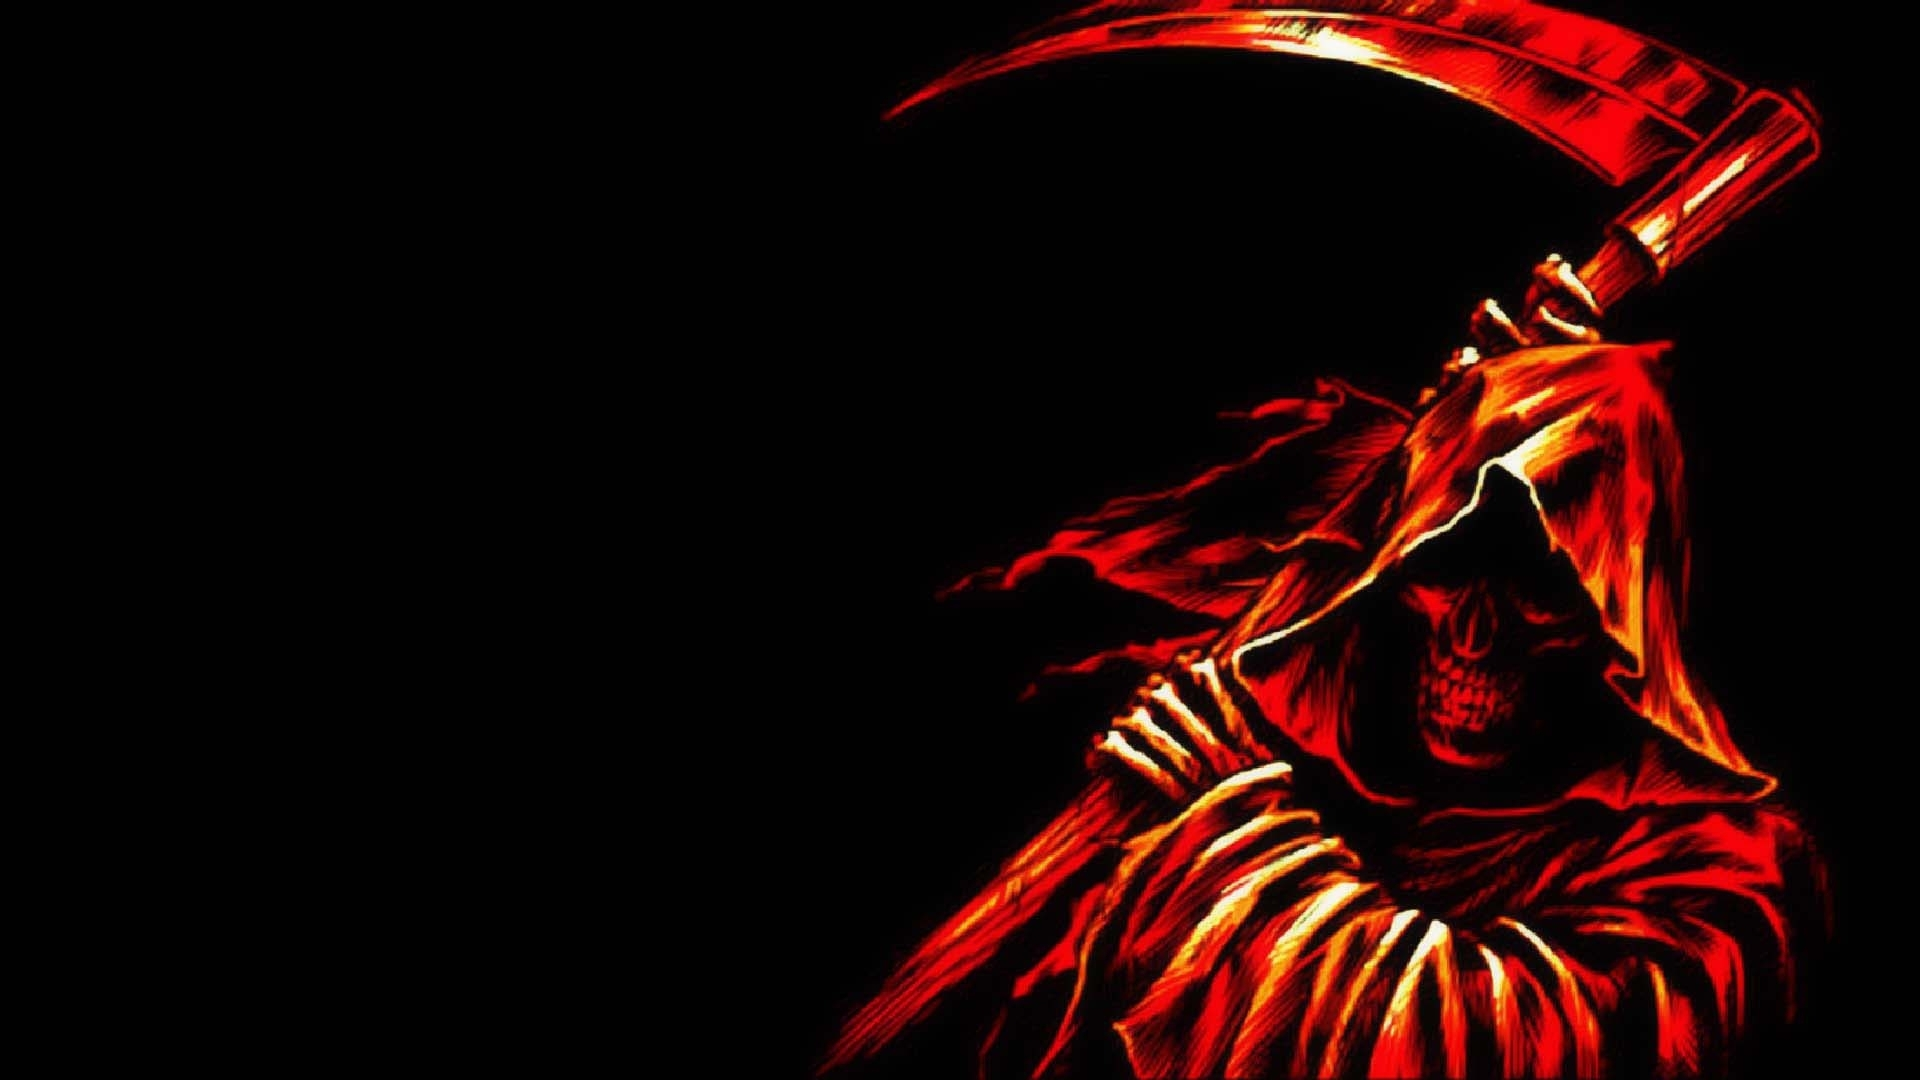 grim reaper full hd wallpaper and background image | 1920x1080 | id